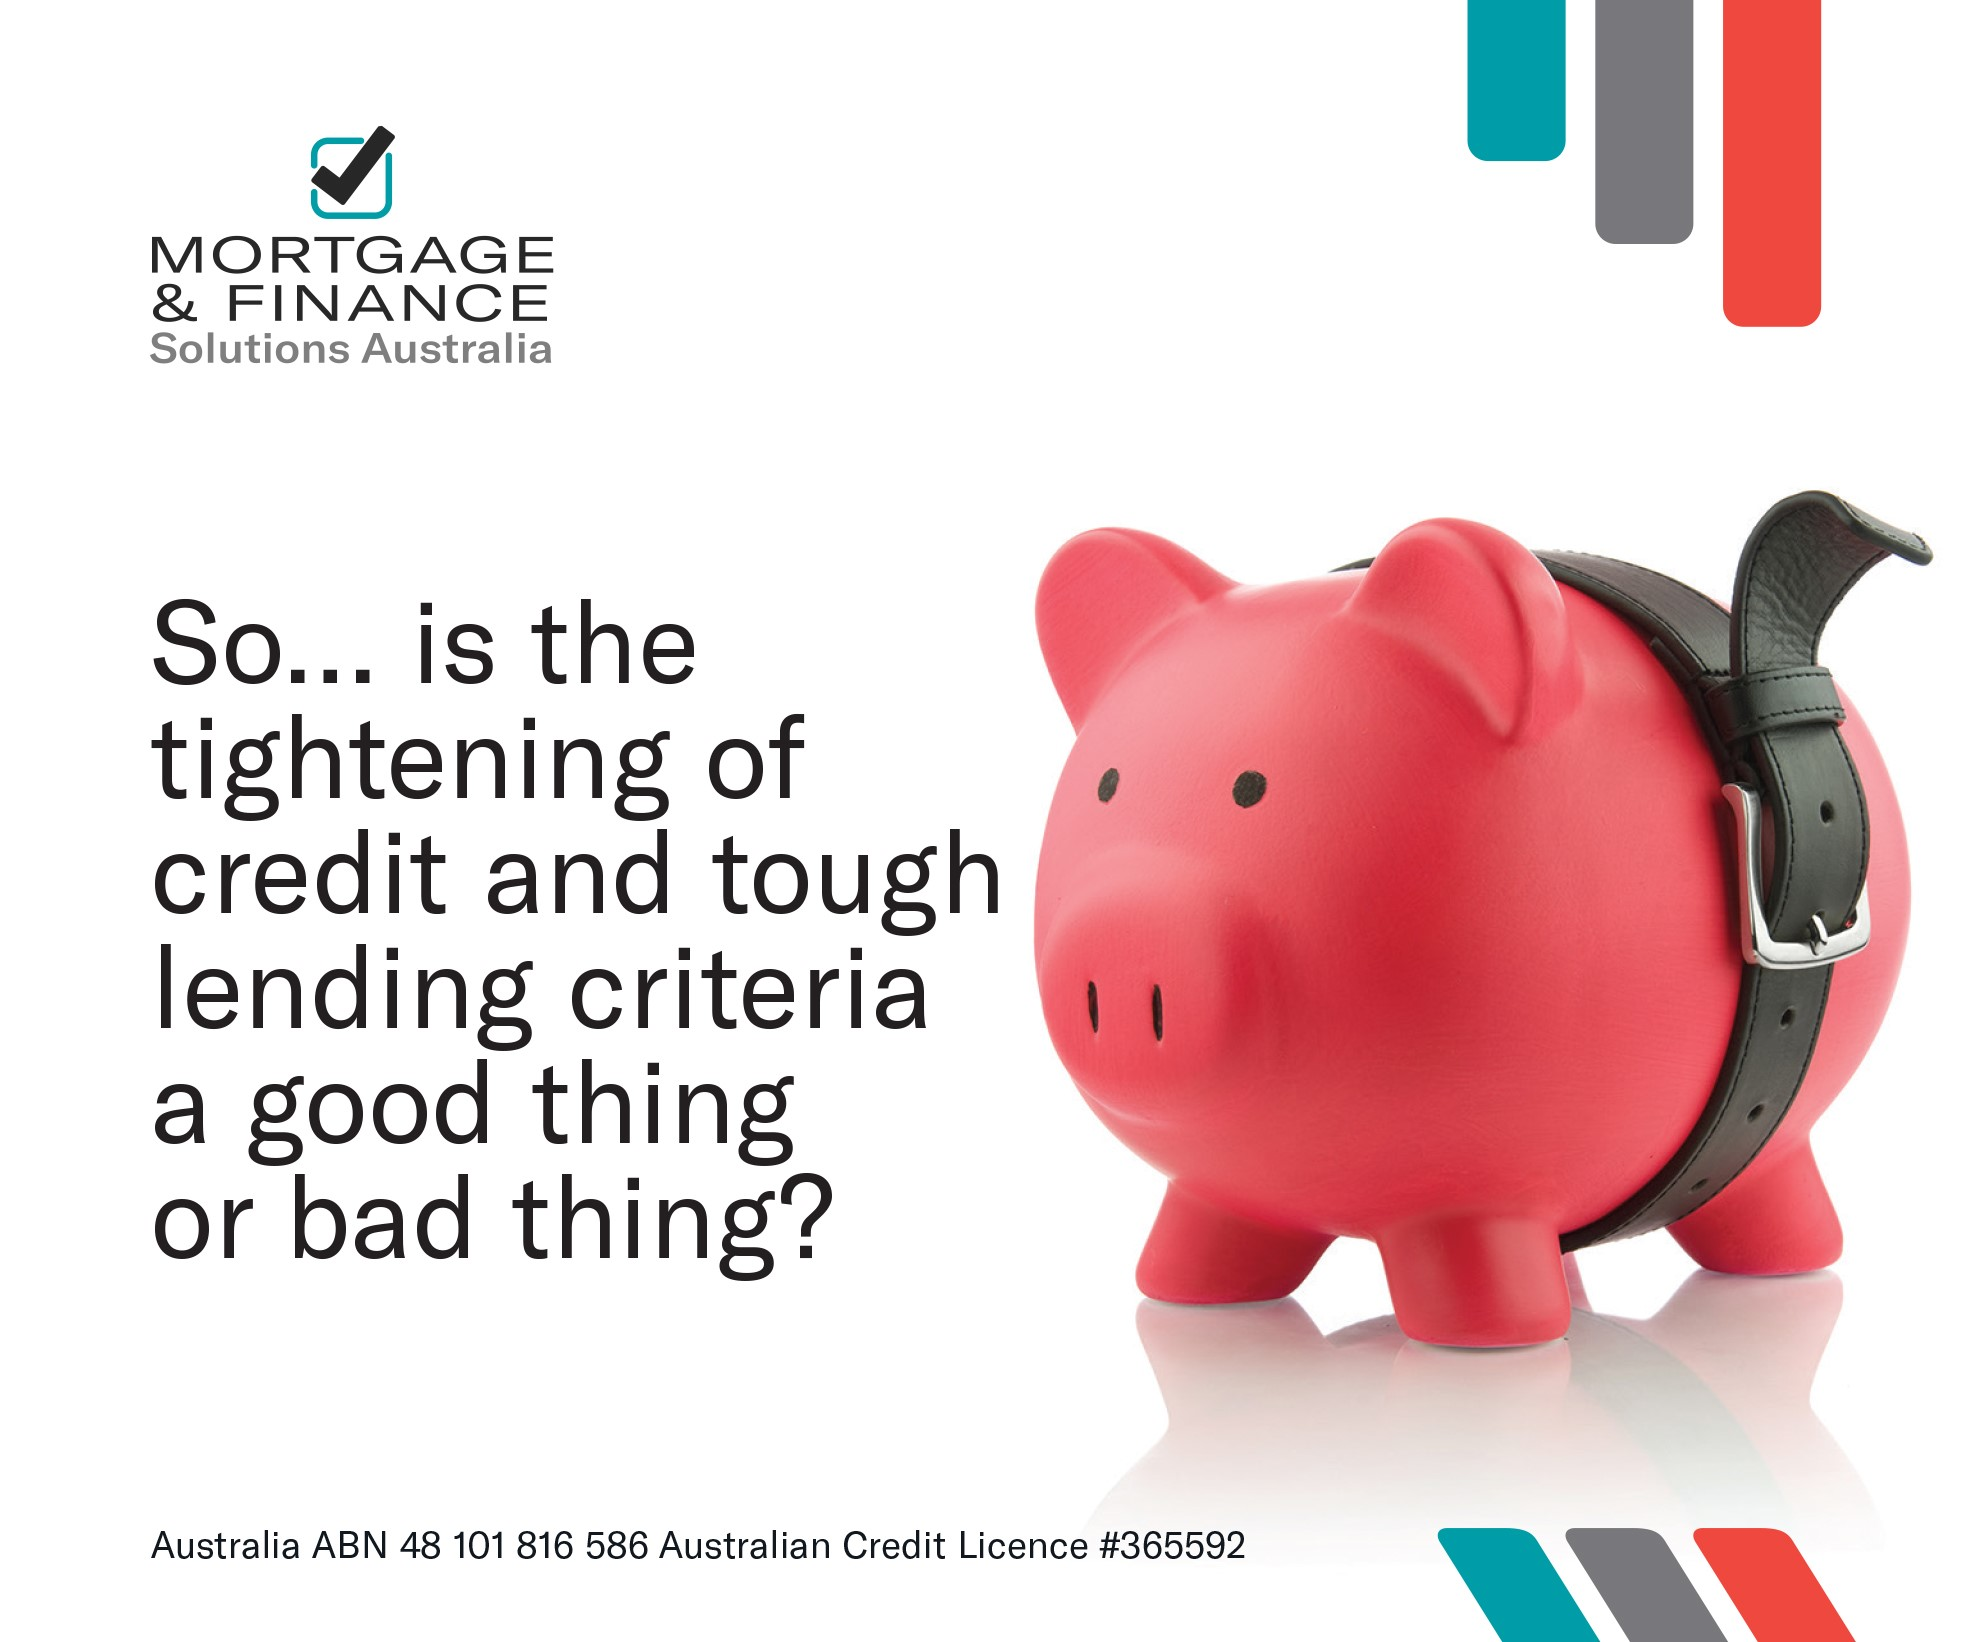 So… is the tightening of credit and tough lending criteria a good thing or a bad thing?